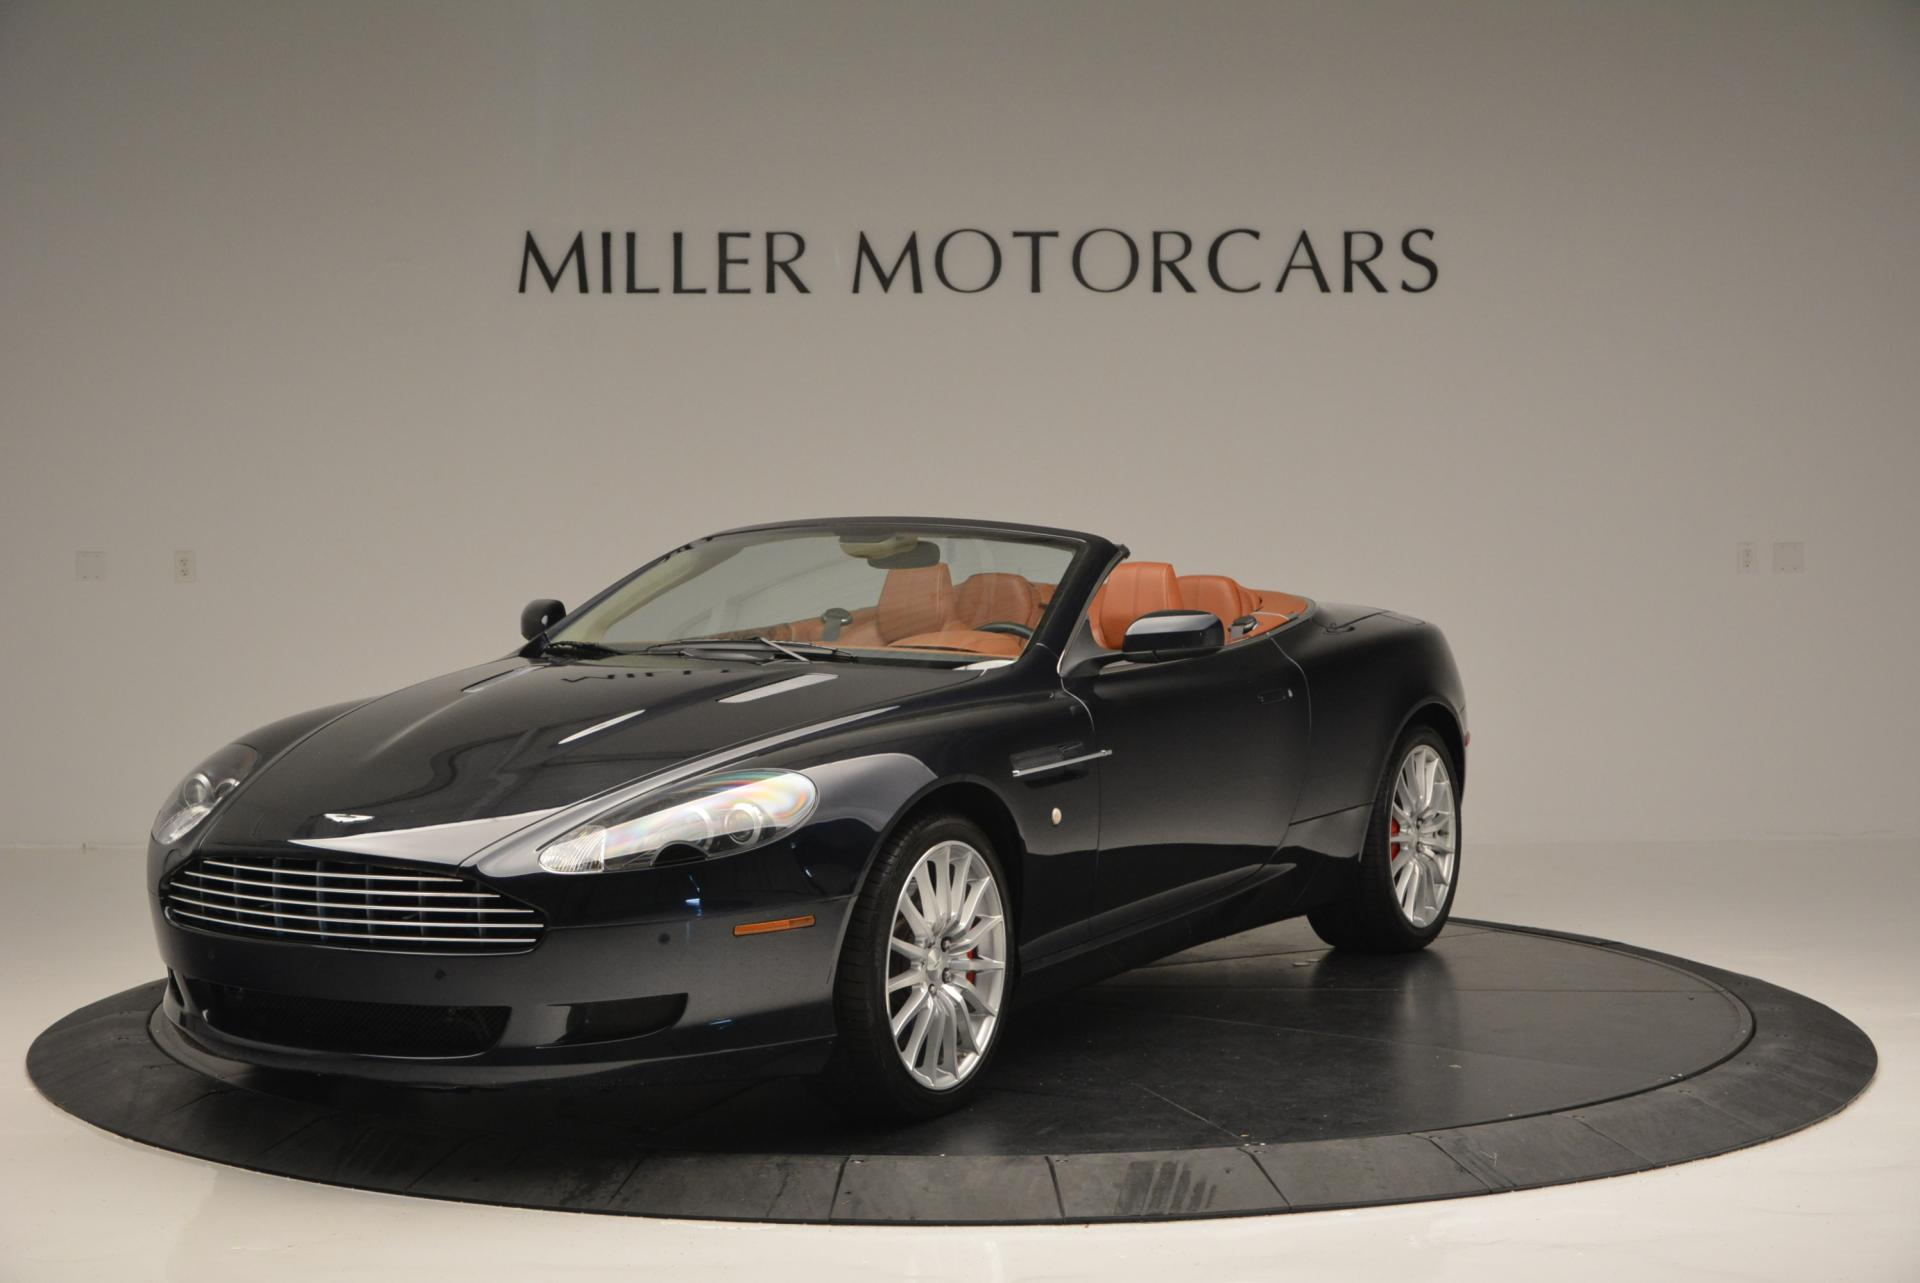 Used 2009 Aston Martin DB9 Volante for sale Sold at Bentley Greenwich in Greenwich CT 06830 1